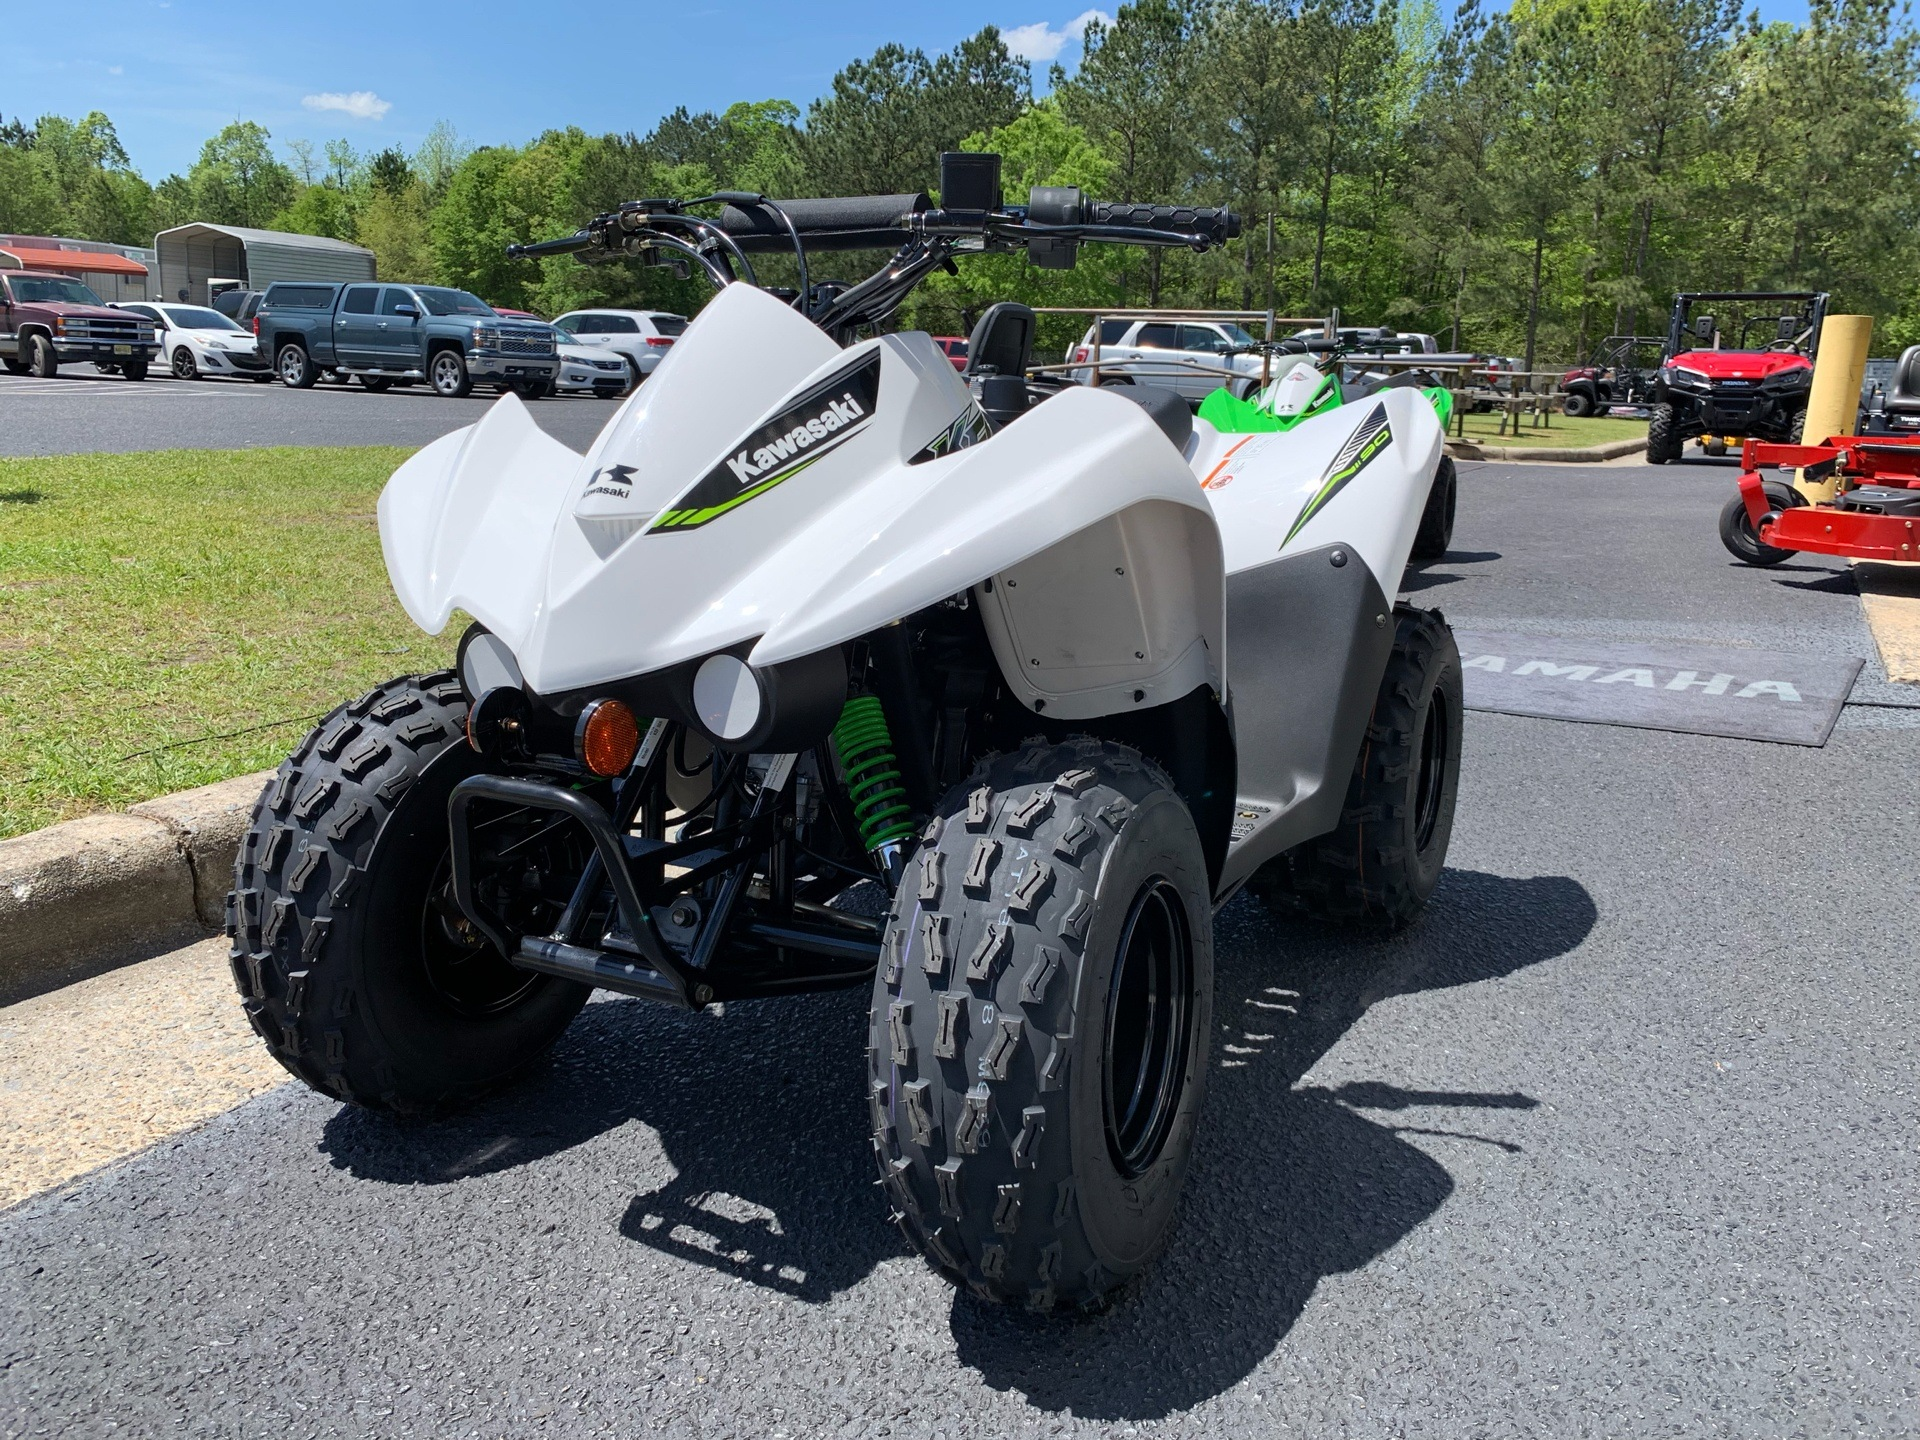 2019 Kawasaki KFX 90 in Greenville, North Carolina - Photo 5